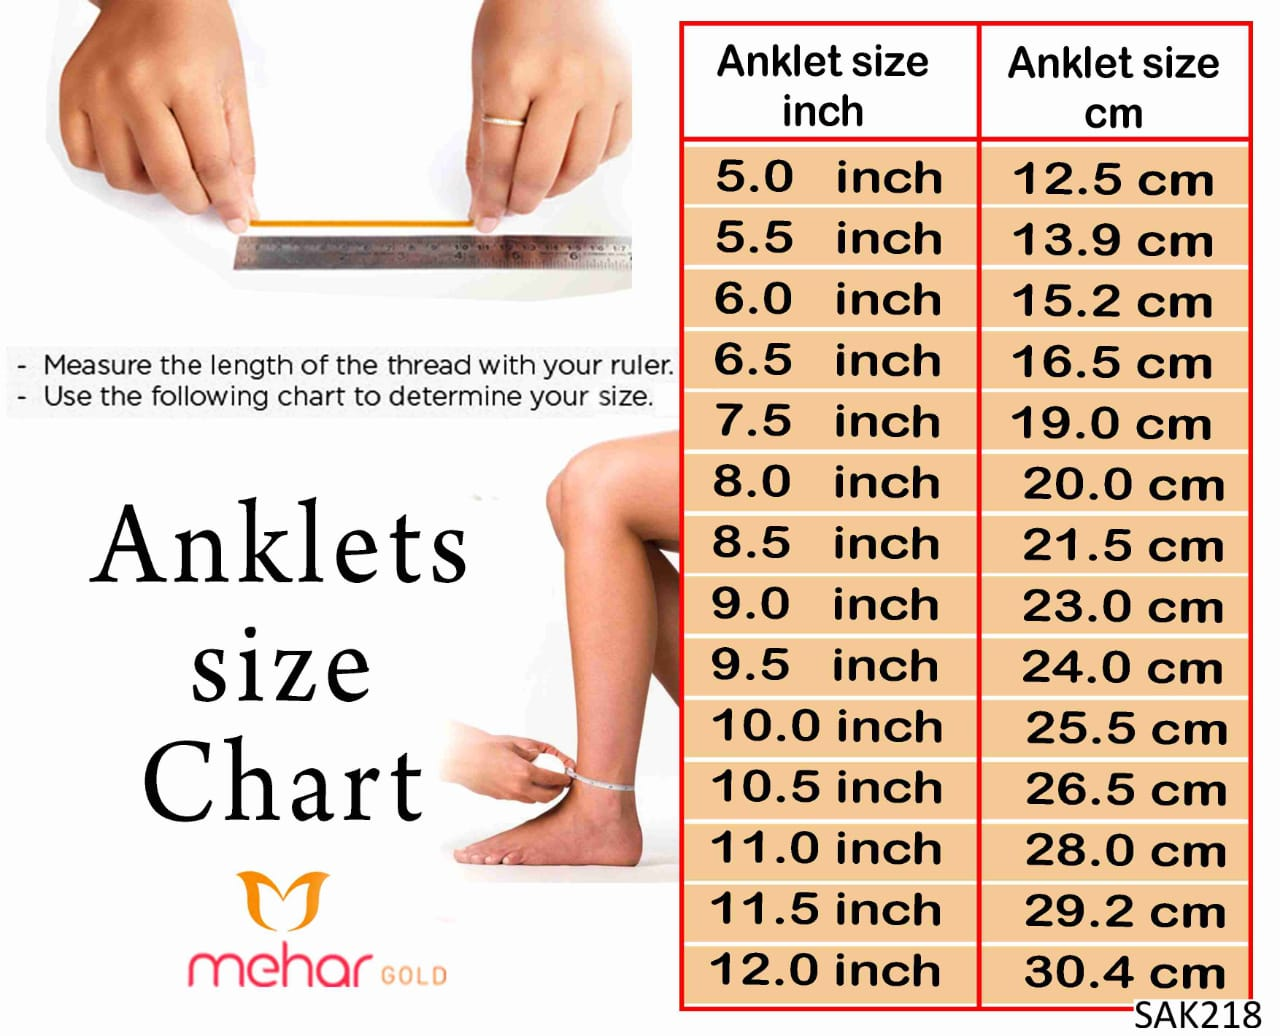 ANKLETS (10 INCH)